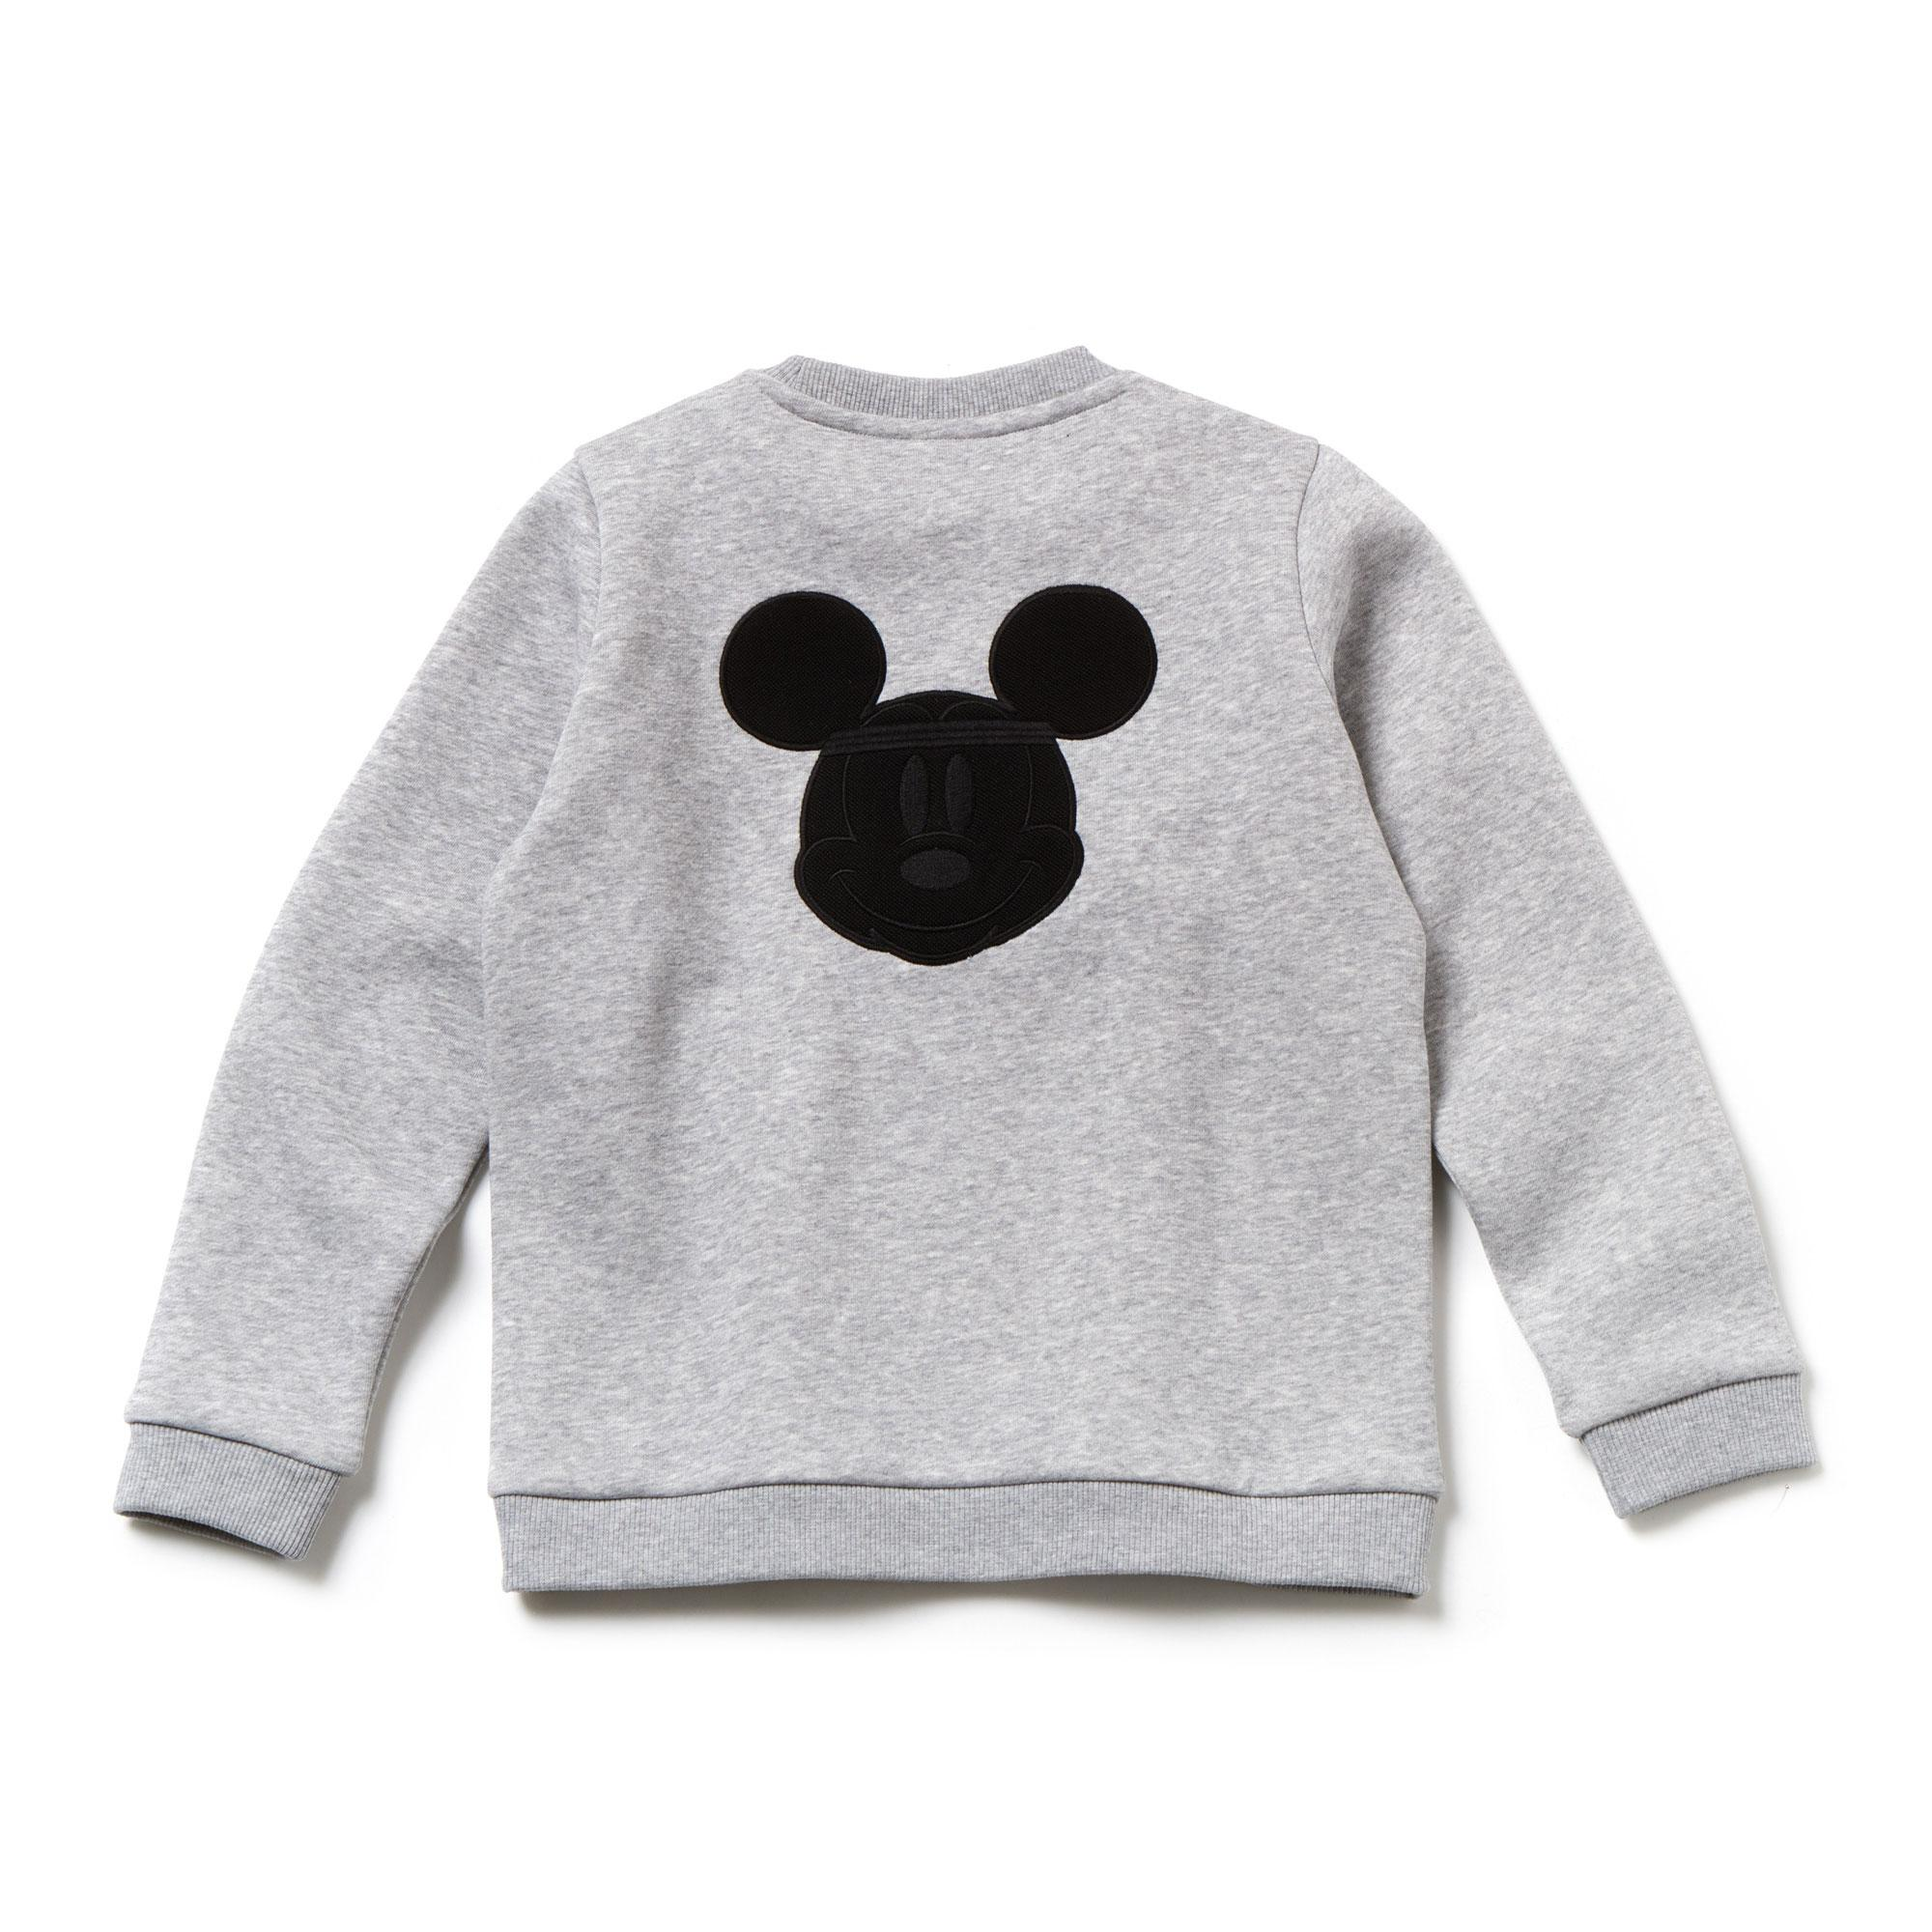 Lacoste X Disney Kids' Sweatshirts